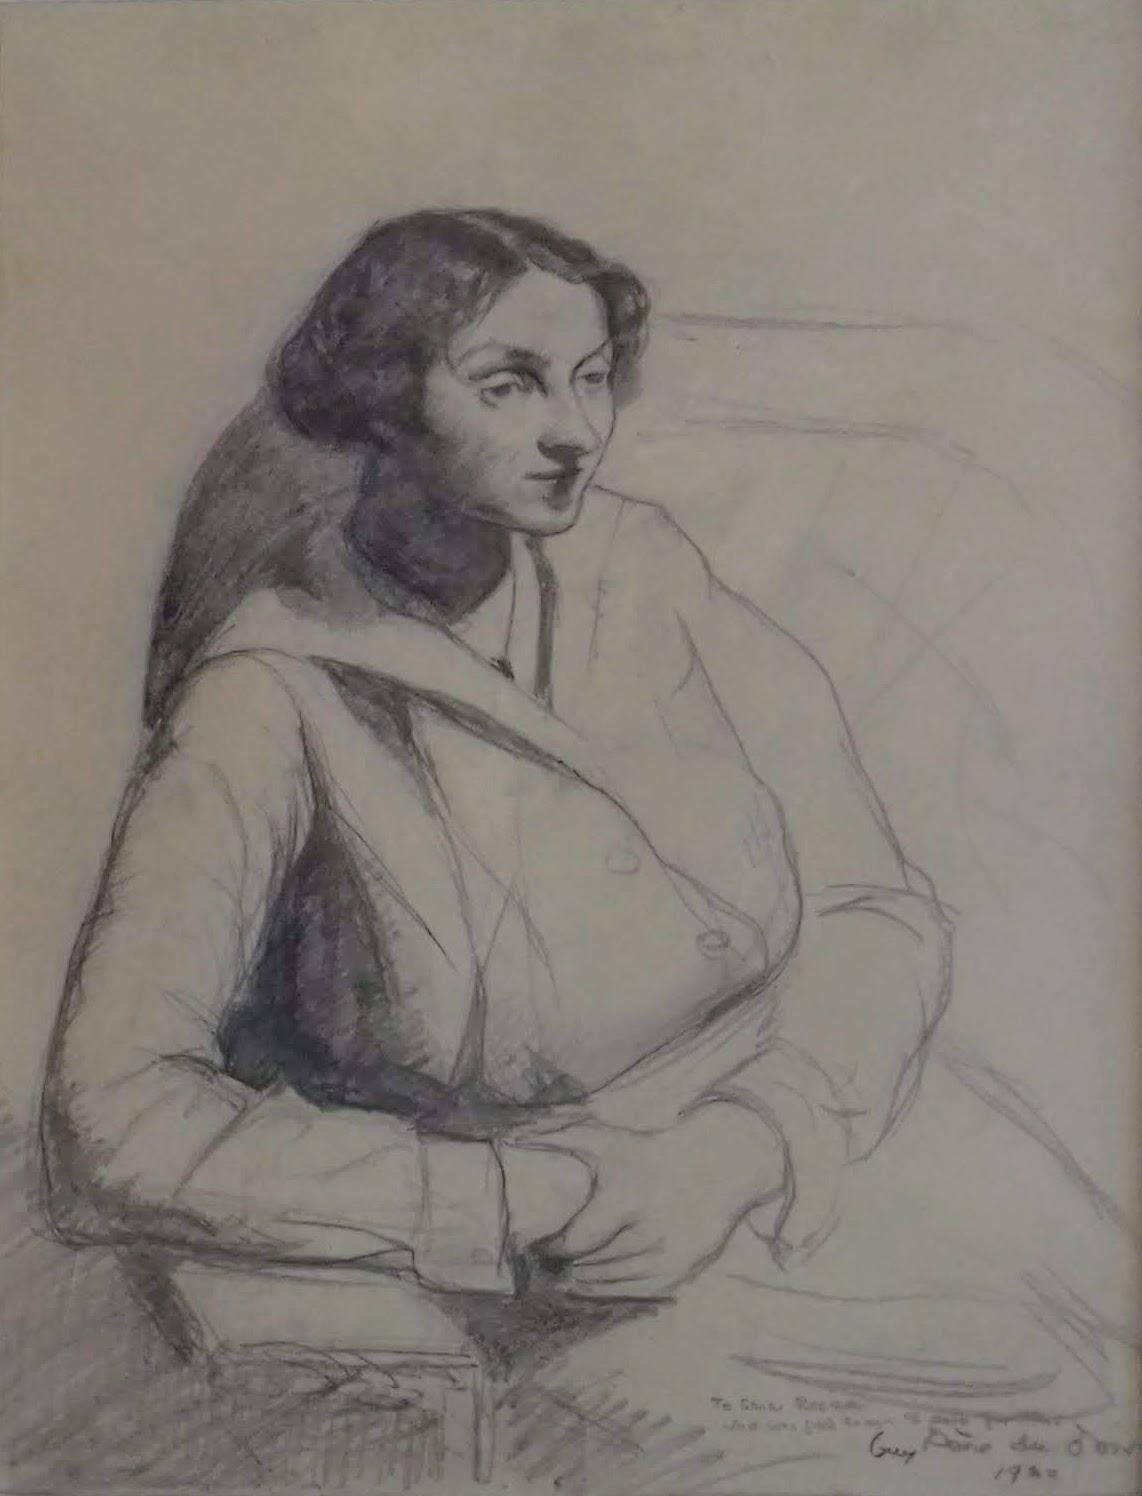 The thoughtful girl on the sofa, WPA American Modernism Realism 1920 drawing